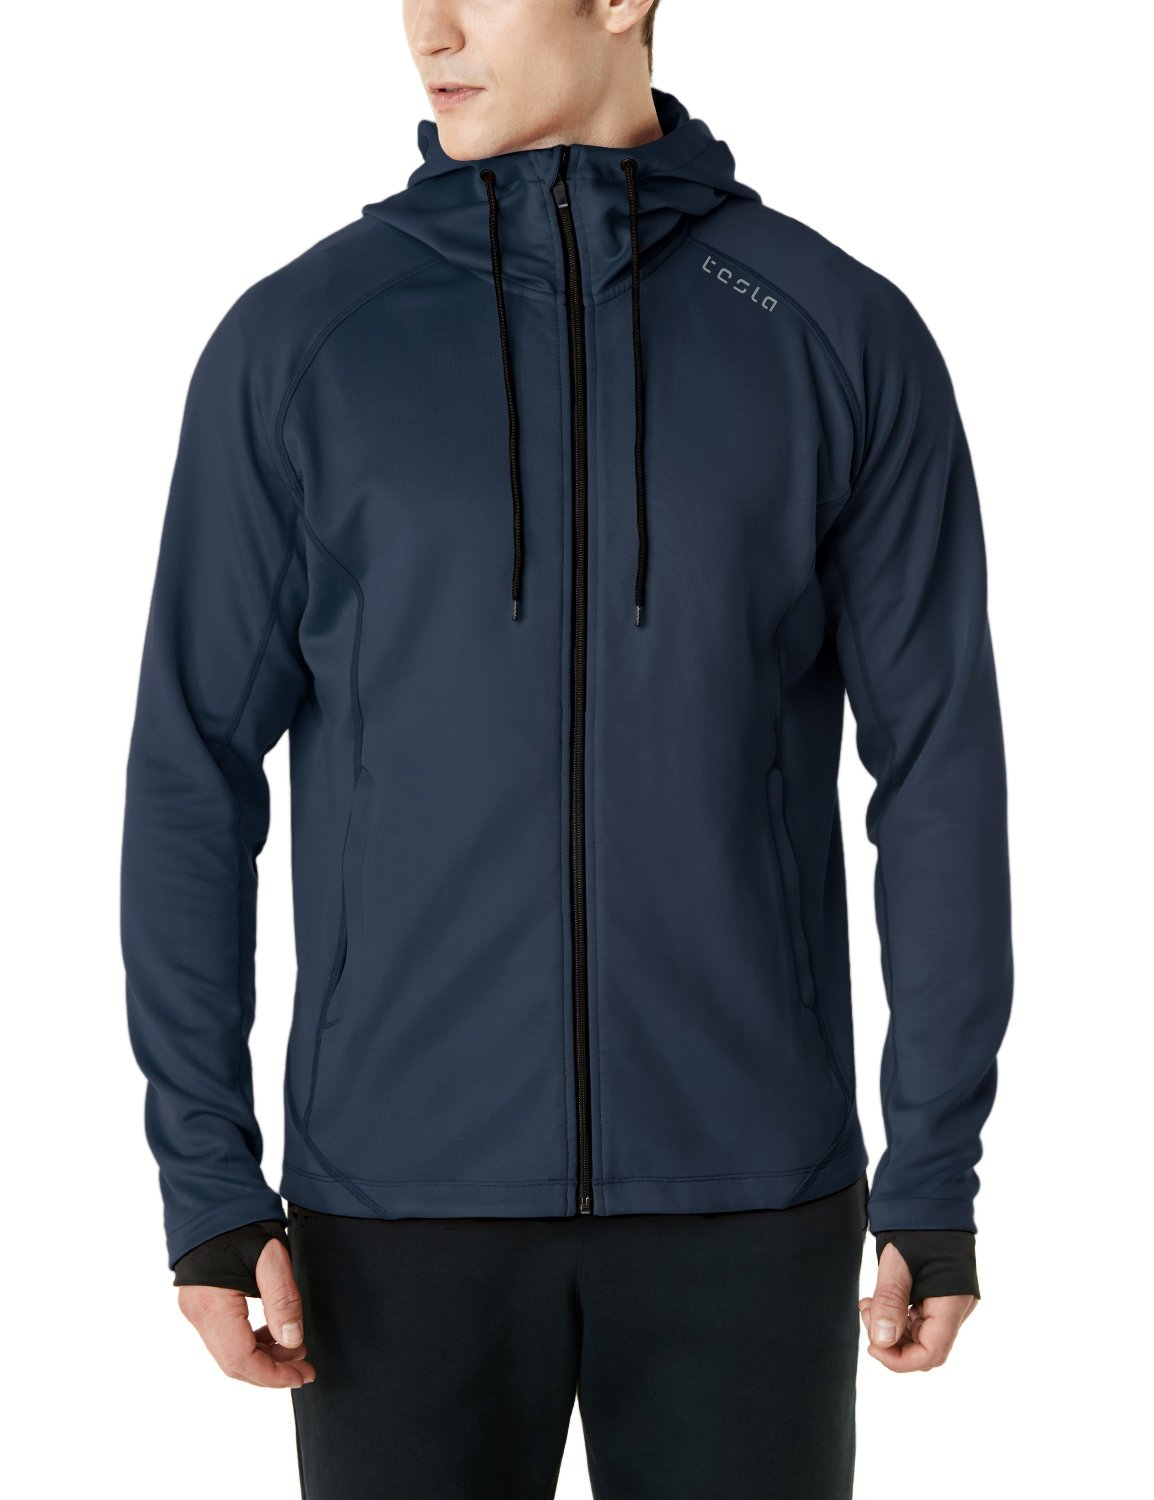 TSLA Men's Performance Active Training Full-Zip Hoodie Jacket, Active Fullzip(mkj03) - Navy, XXX-Large by TSLA